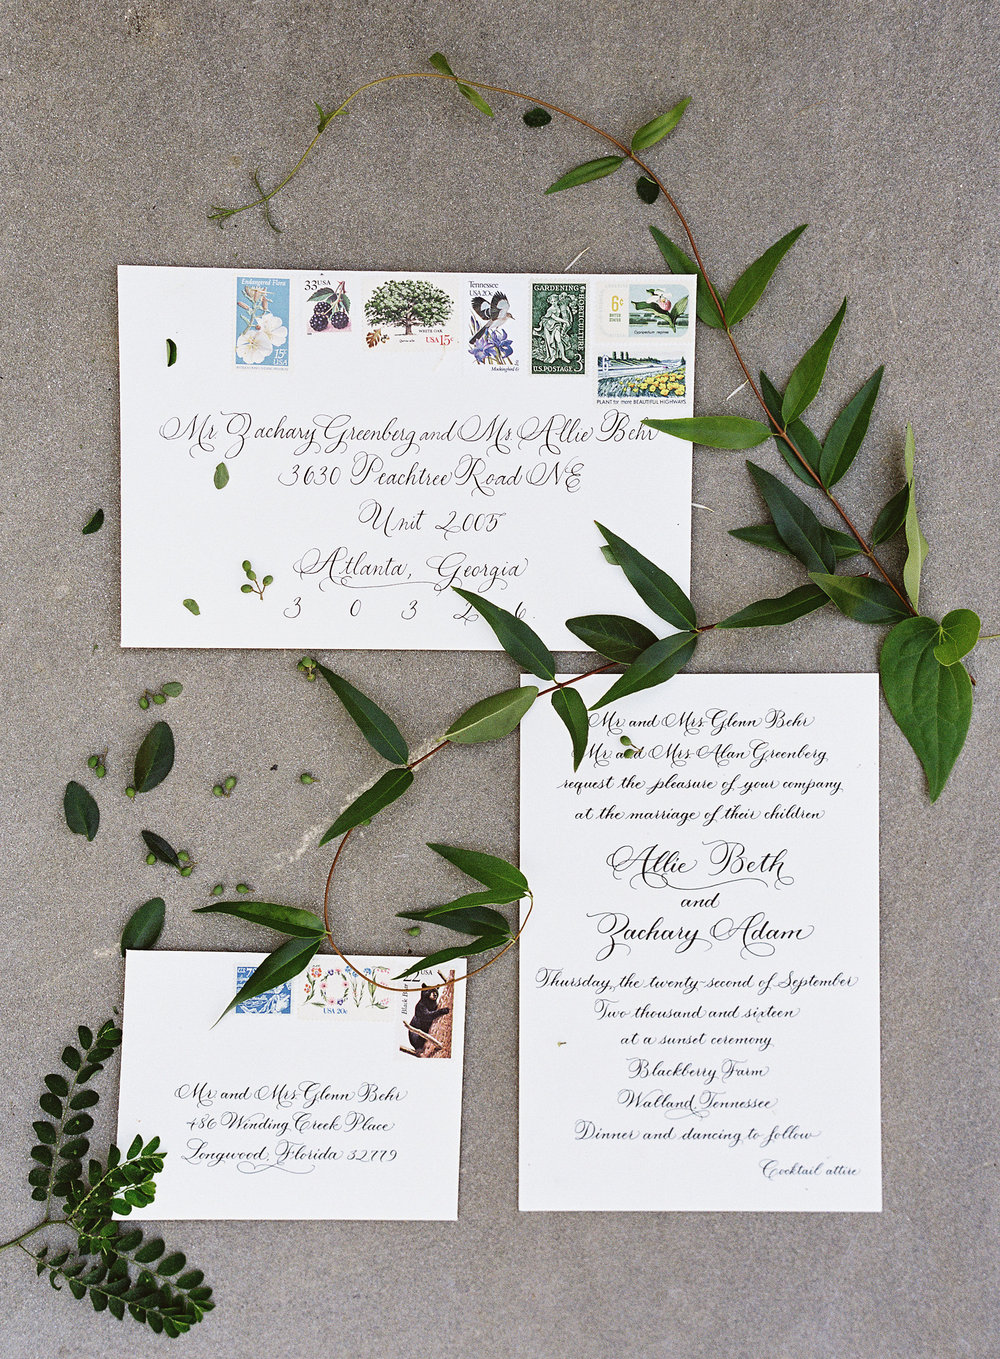 Elegant Invitation Suite // Blackberry Farm Wedding Floral Design